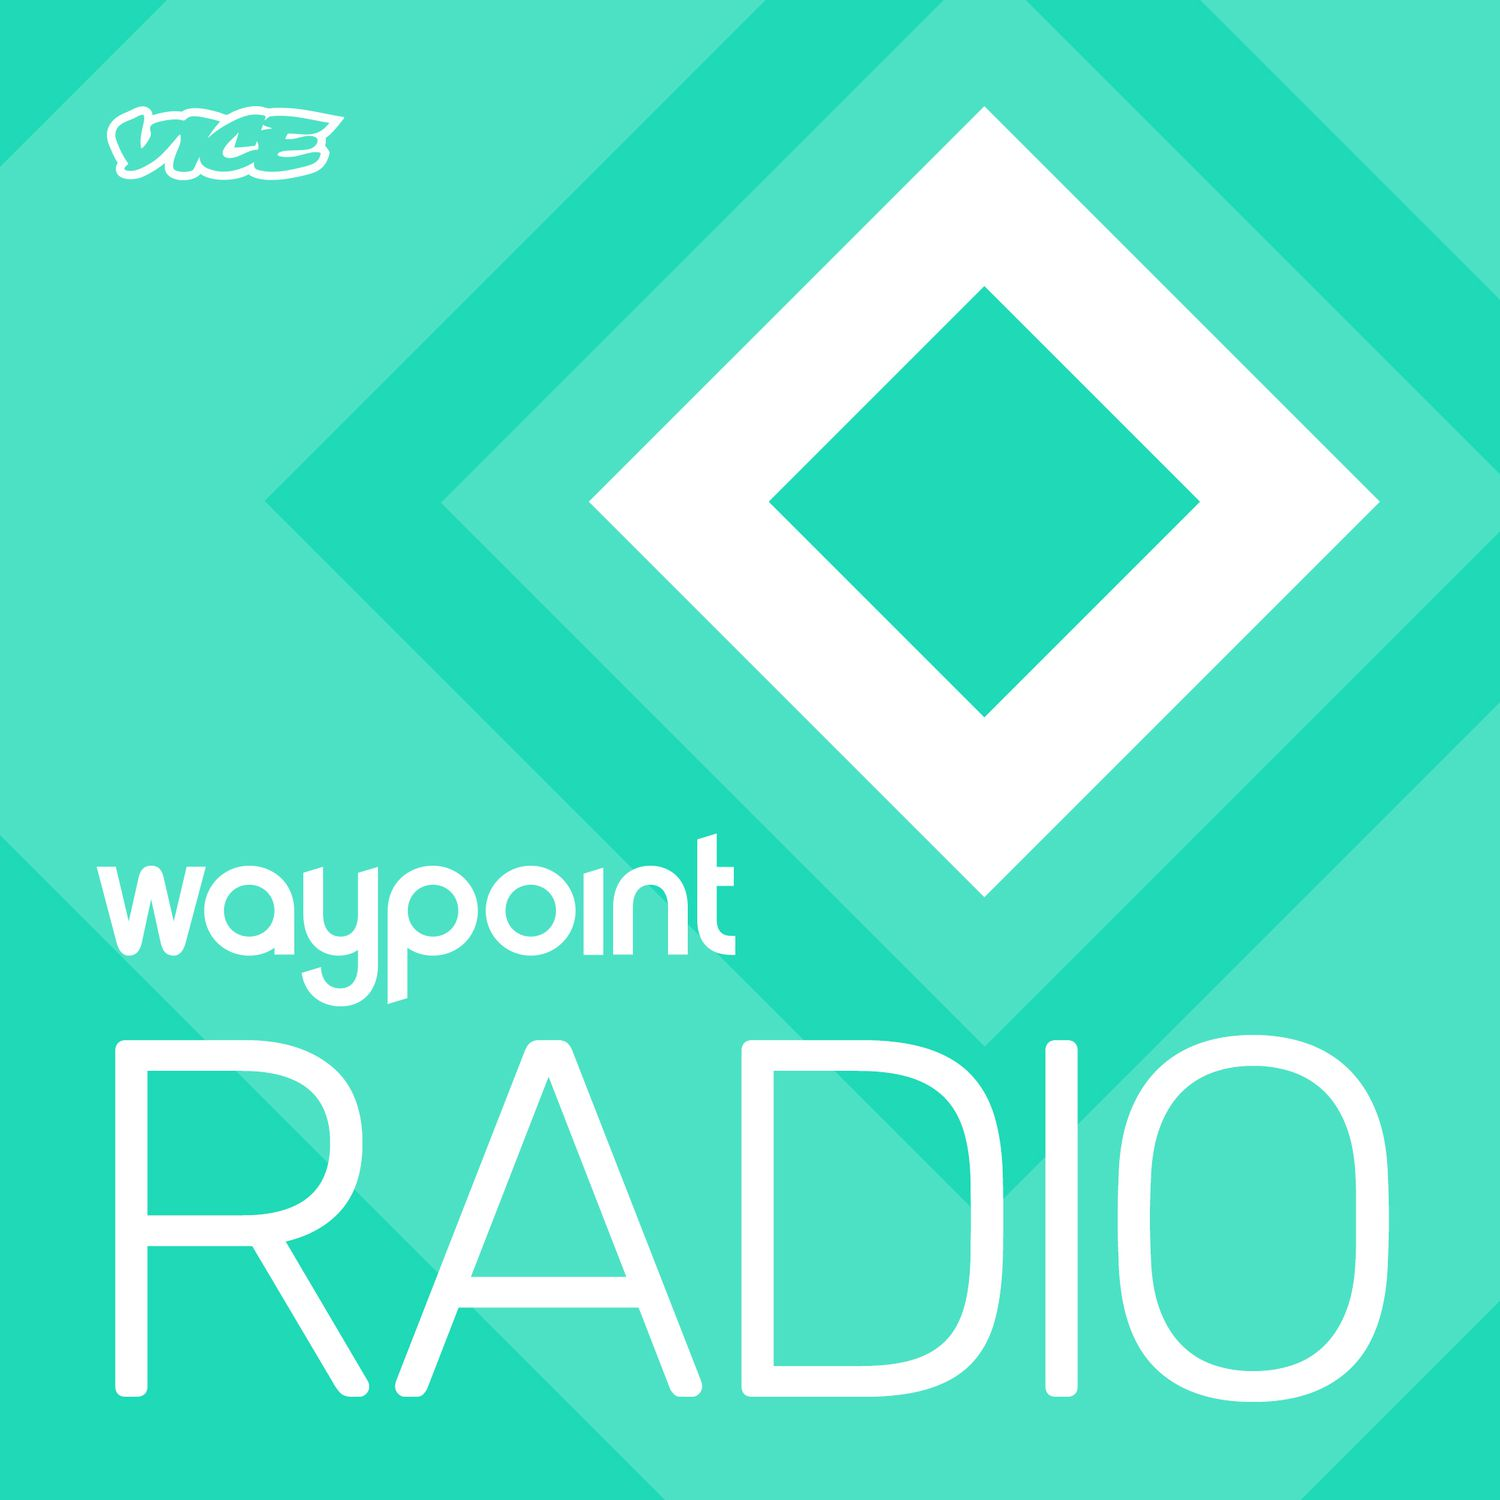 Waypoint Radio video game podcasts logo